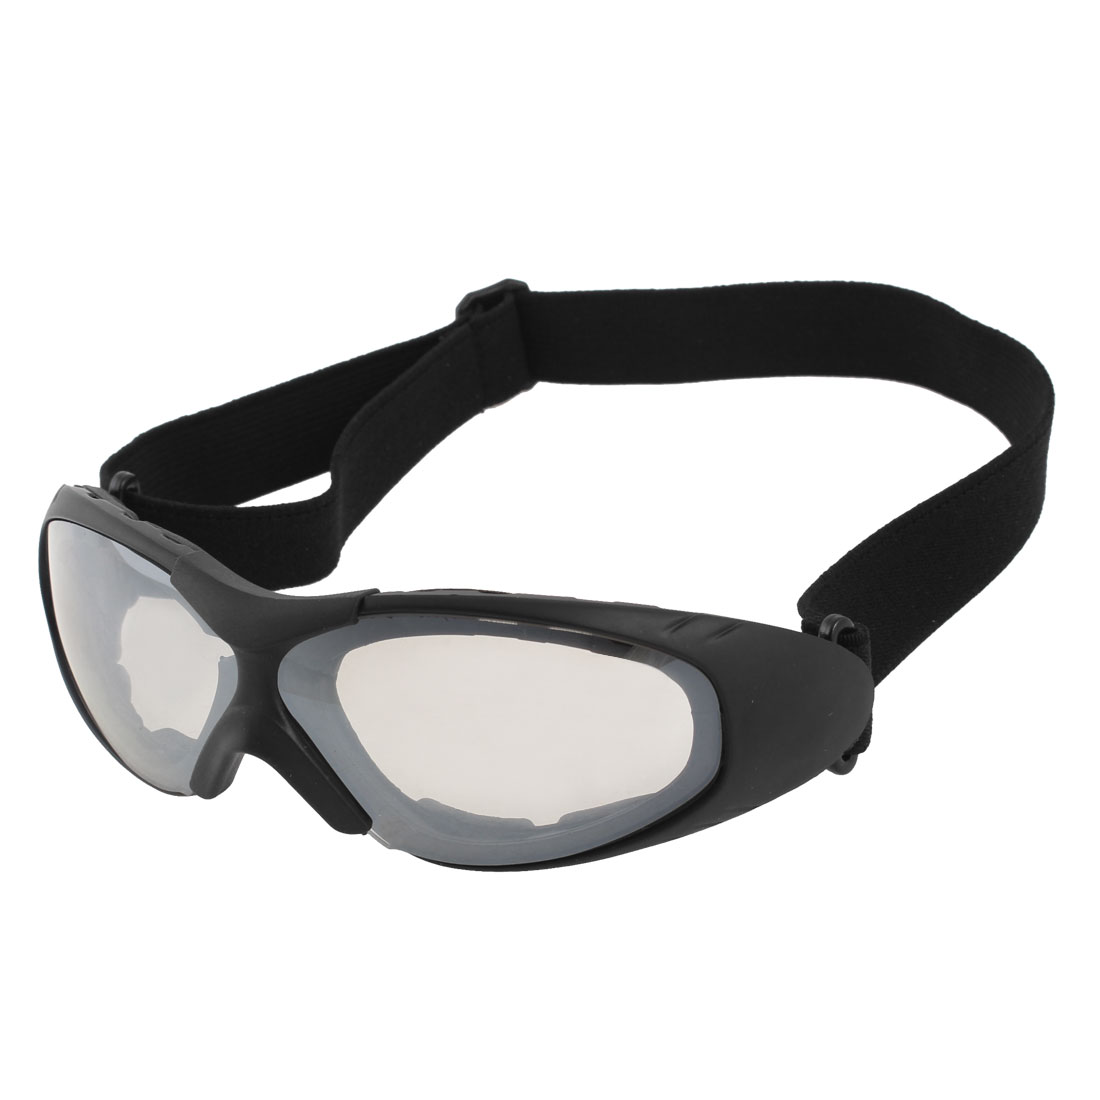 Climbing Racing Skiing Safety Glasses Clear White Lens Ski Sports Goggles UV400